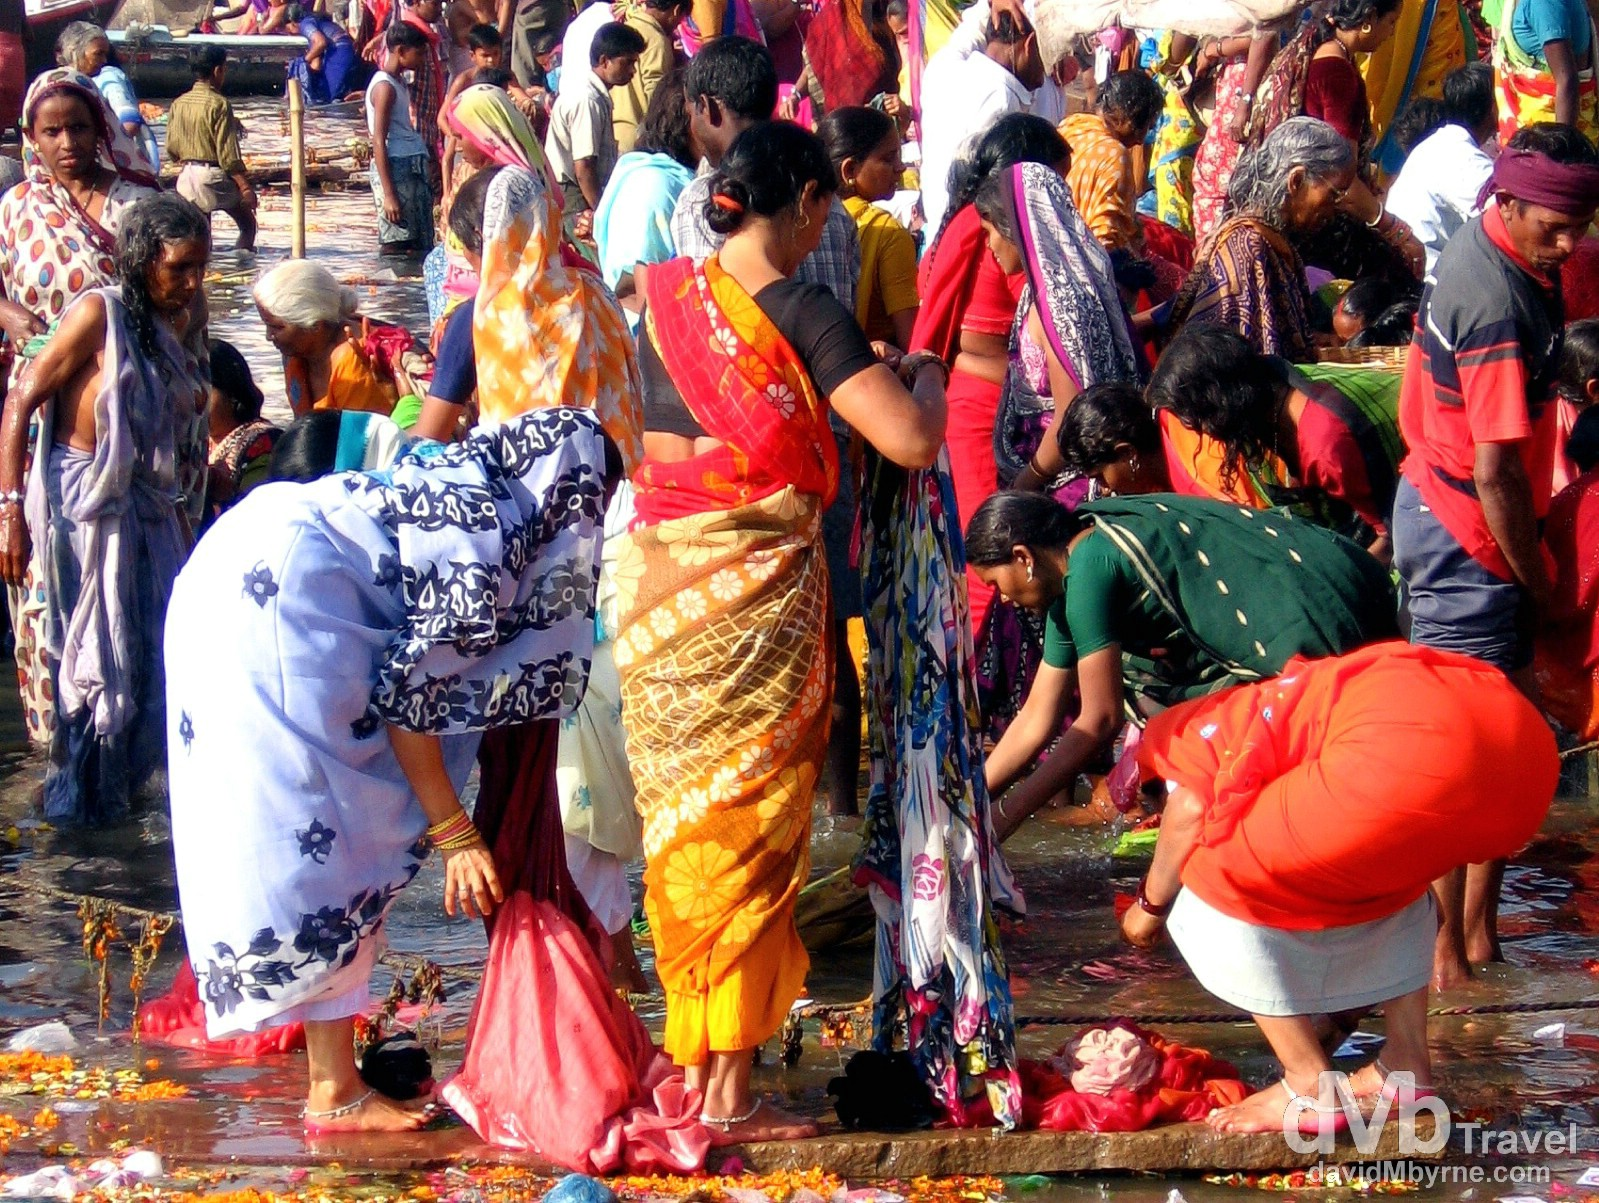 Colorful activity by the edge of the sacred River Ganges in Varanasi, Uttar Pradesh, India. March 18, 2008.